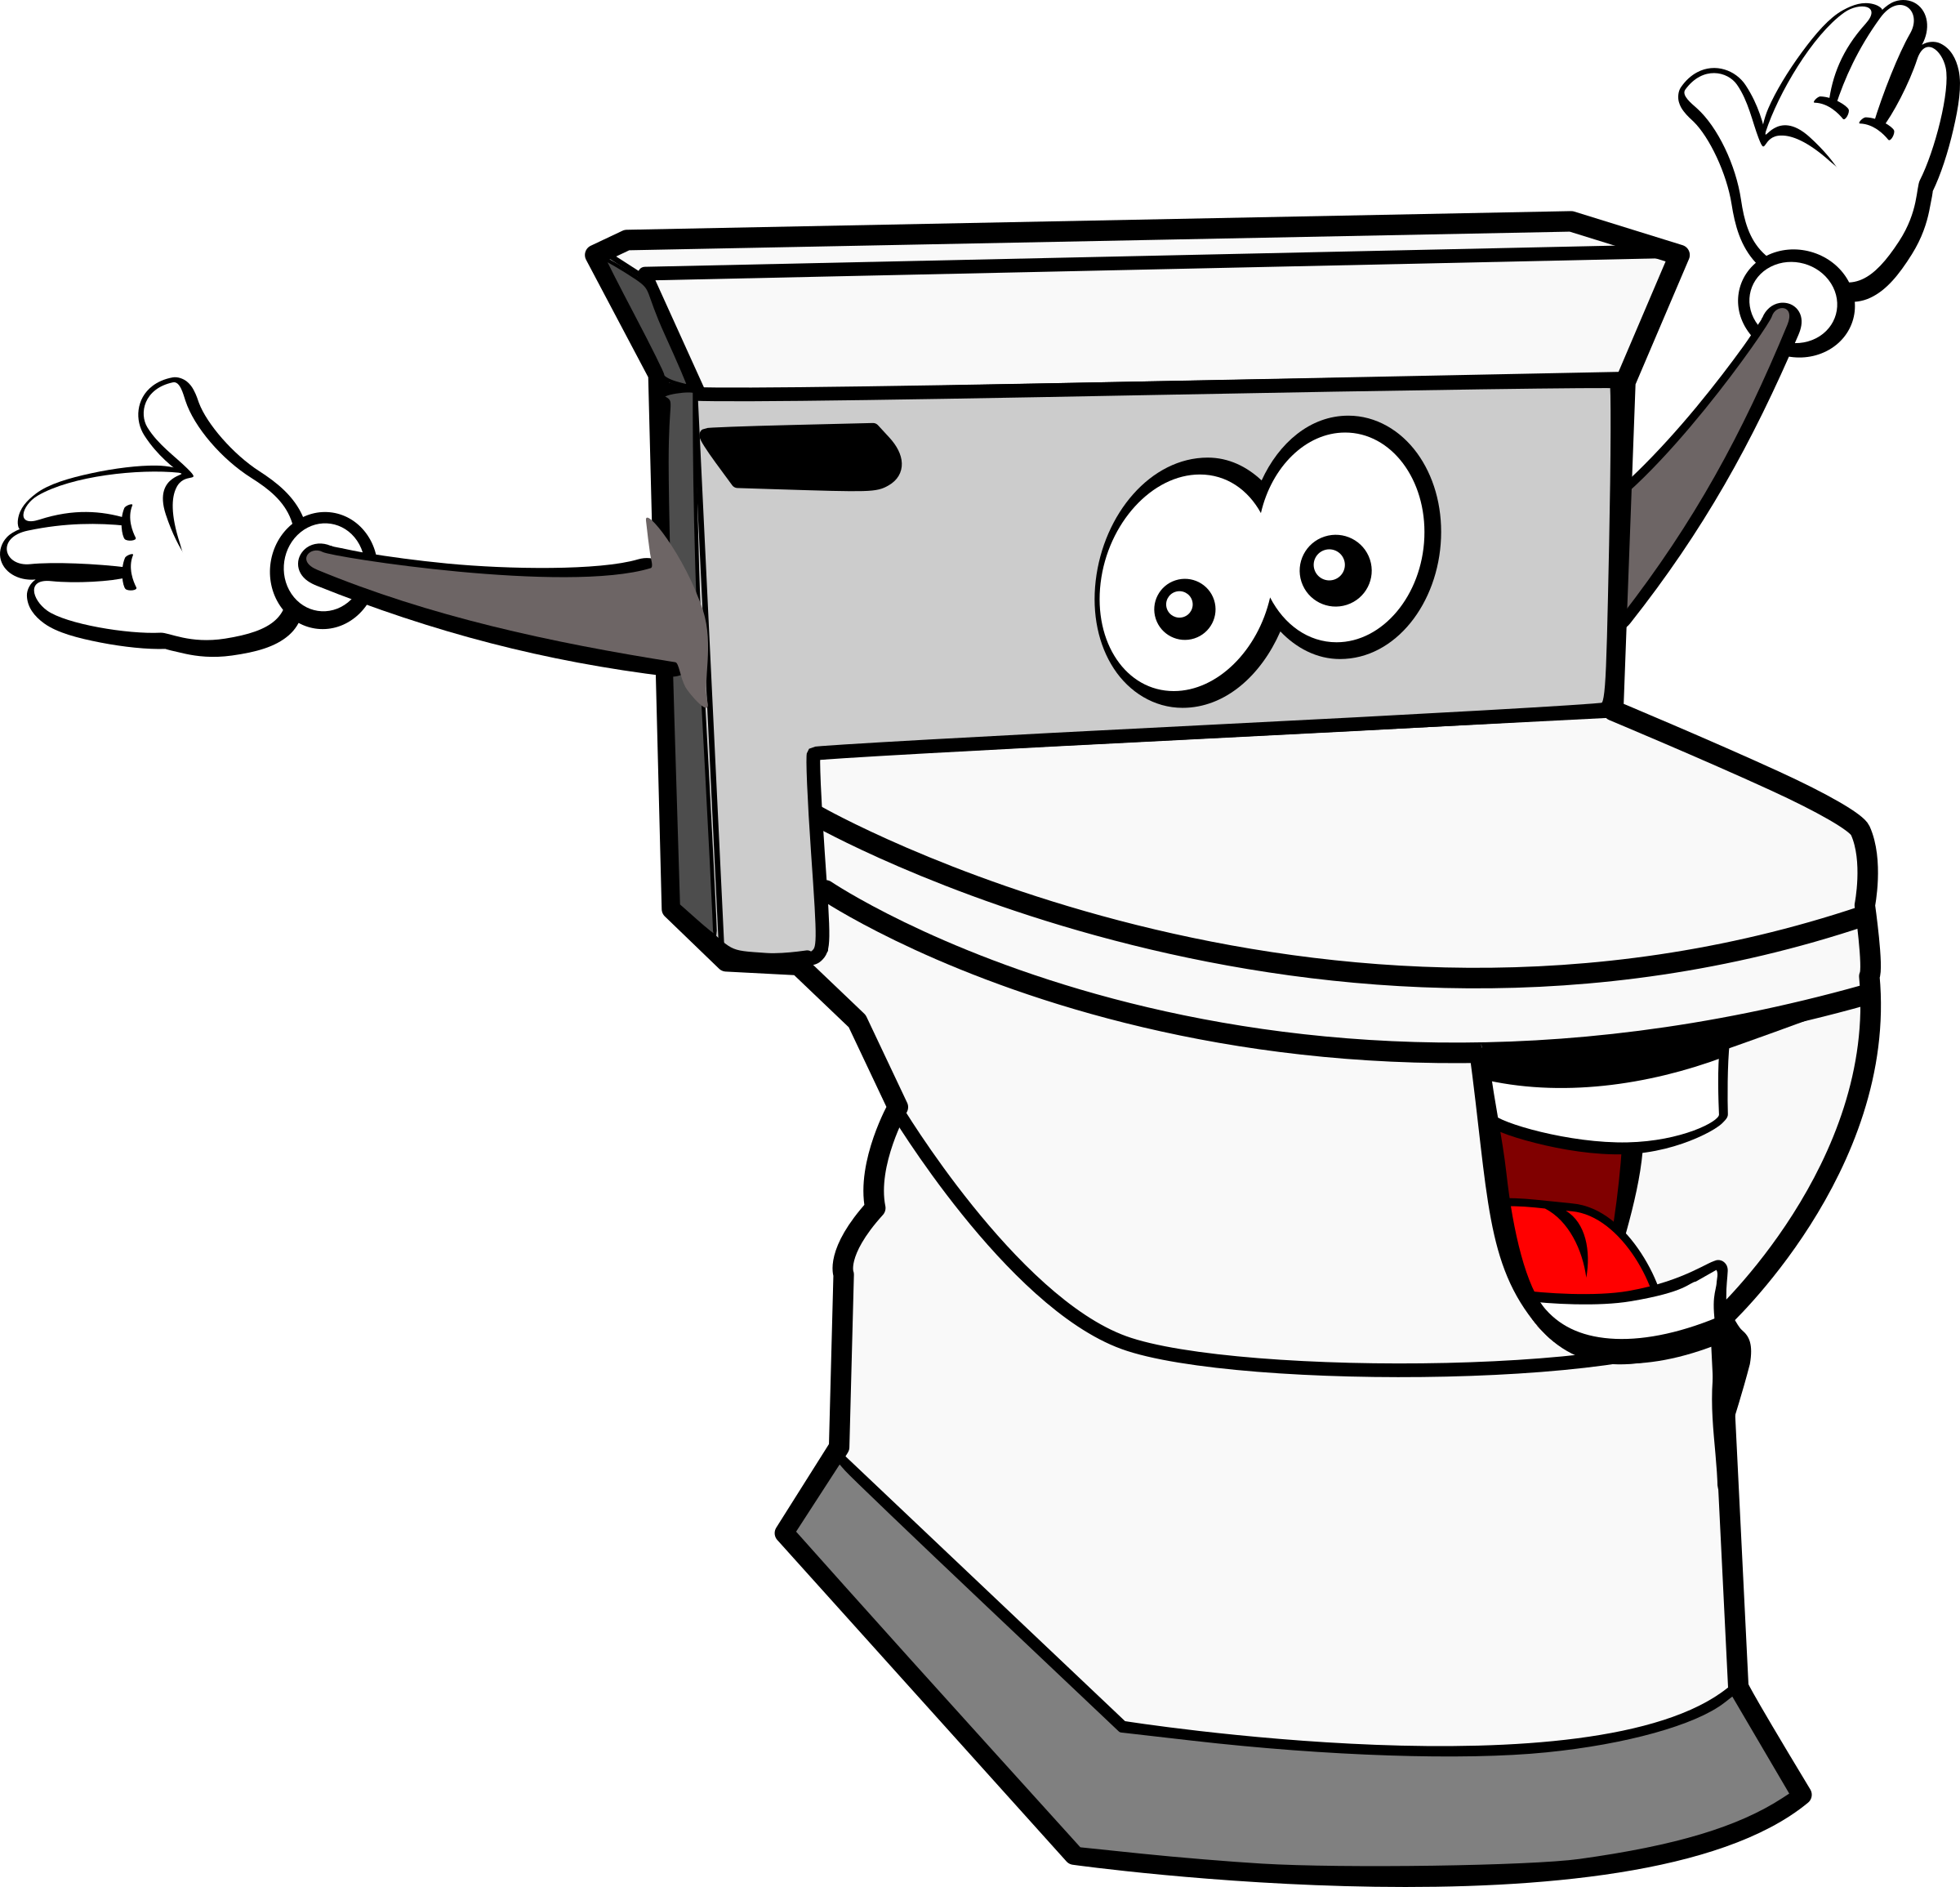 Toilet clipart png. Kawaii icons free and